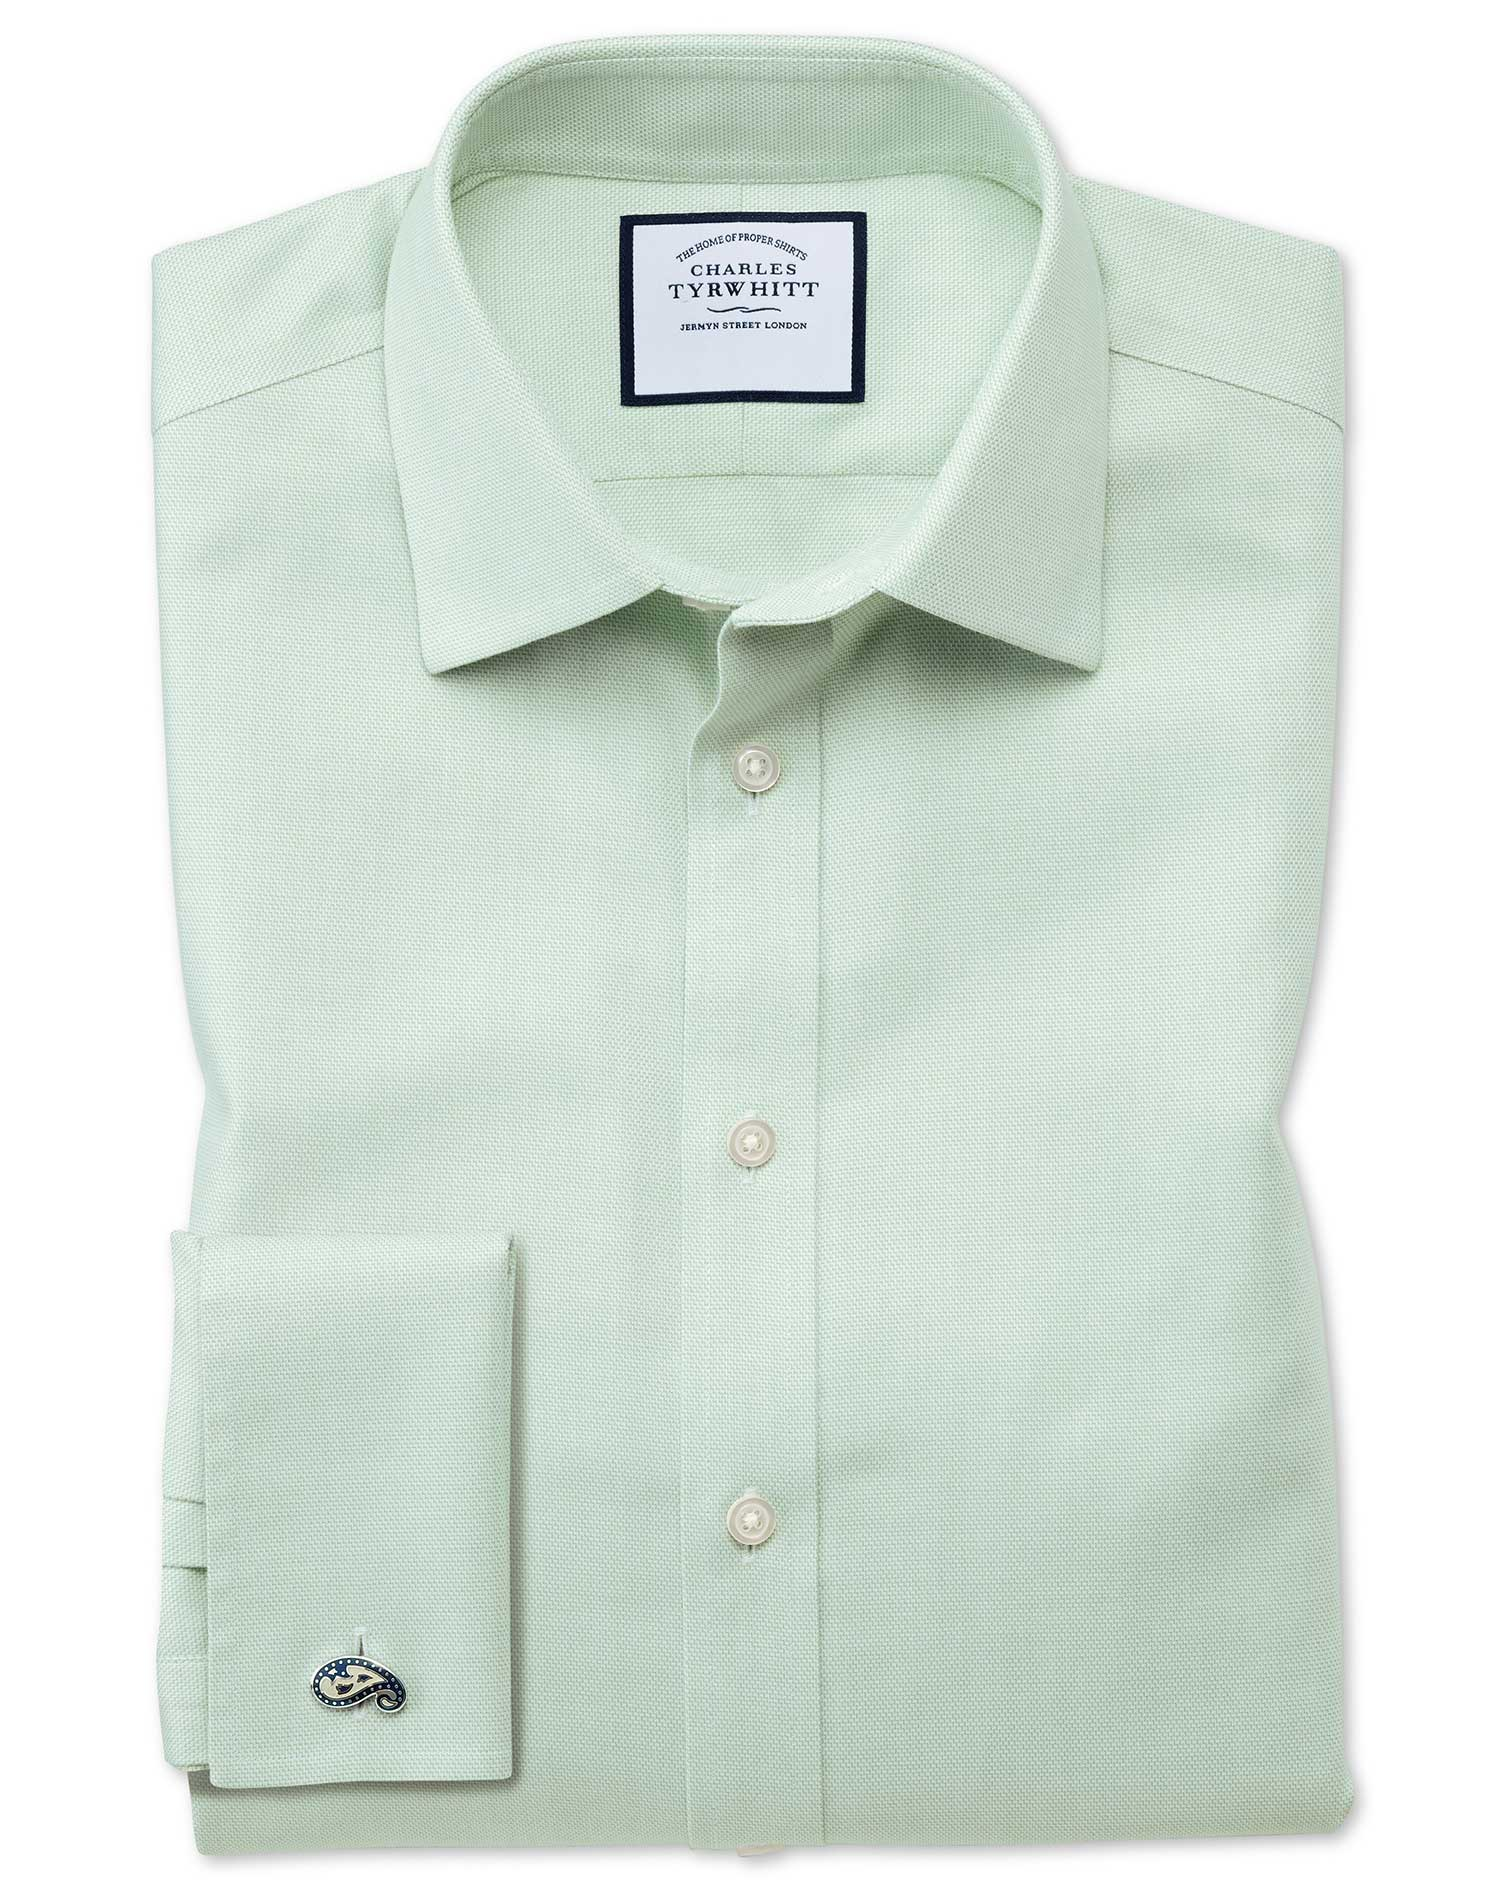 Classic Fit Non-Iron Step Weave Green Cotton Formal Shirt Single Cuff Size 18/38 by Charles Tyrwhitt